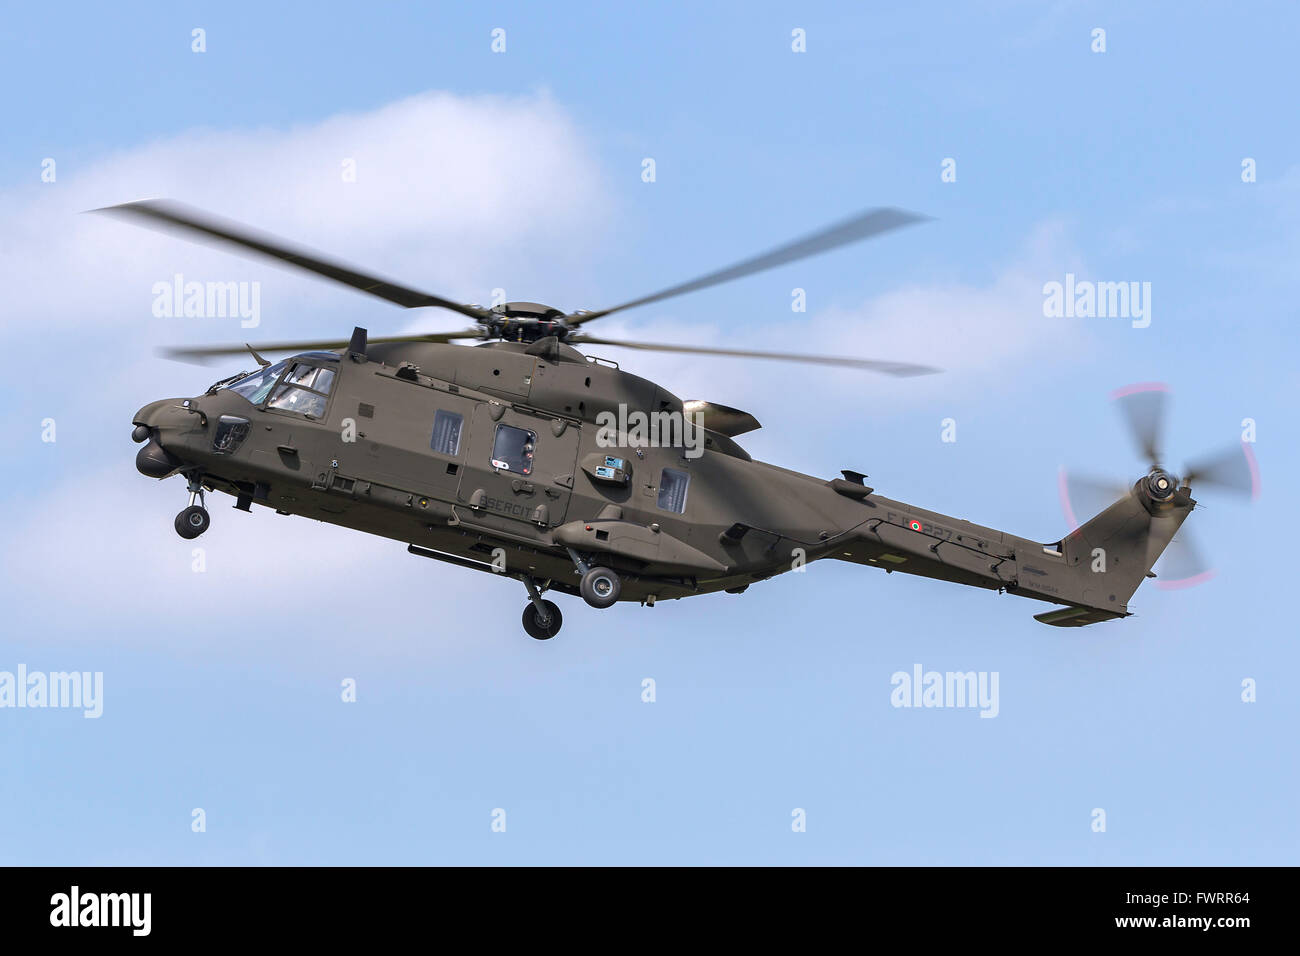 Italian Army (Esercito Italiano) NHI (NH Industries) NH-90 Multirole military helicopter MM81544 - Stock Image